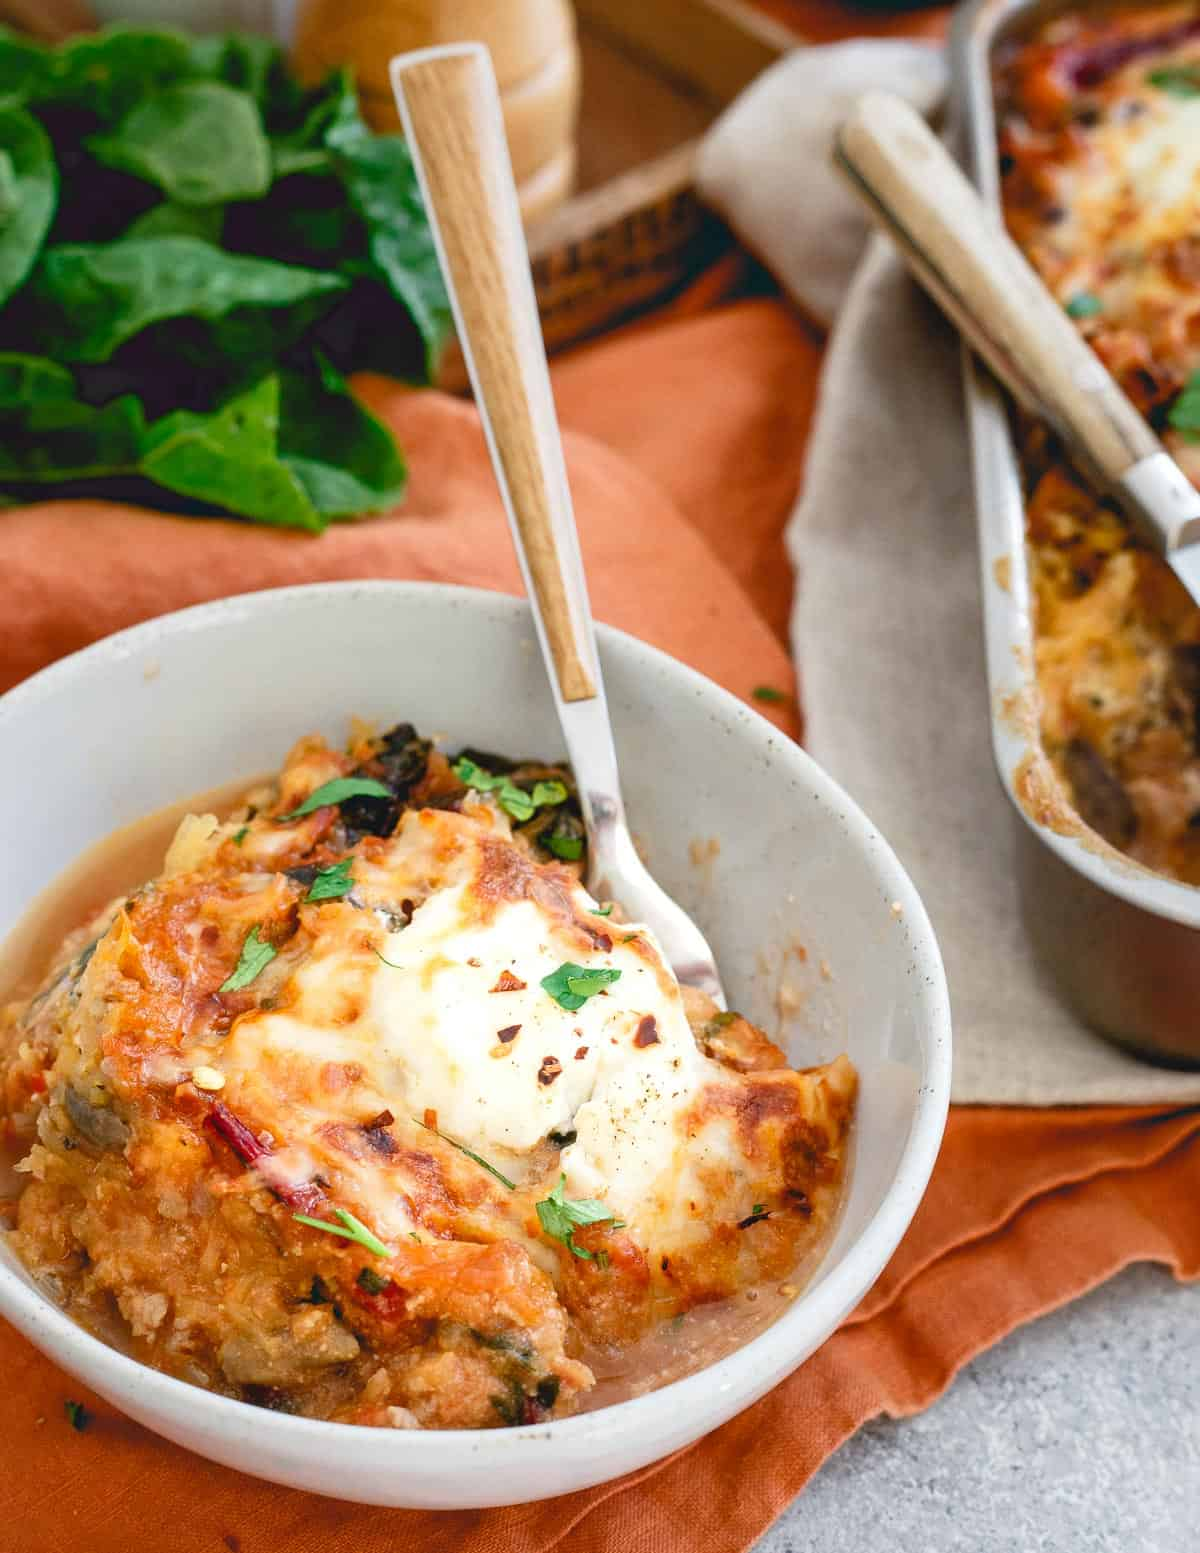 Cheesy, hearty and delicious, you won't miss the noodles in this spaghetti squash baked ziti.